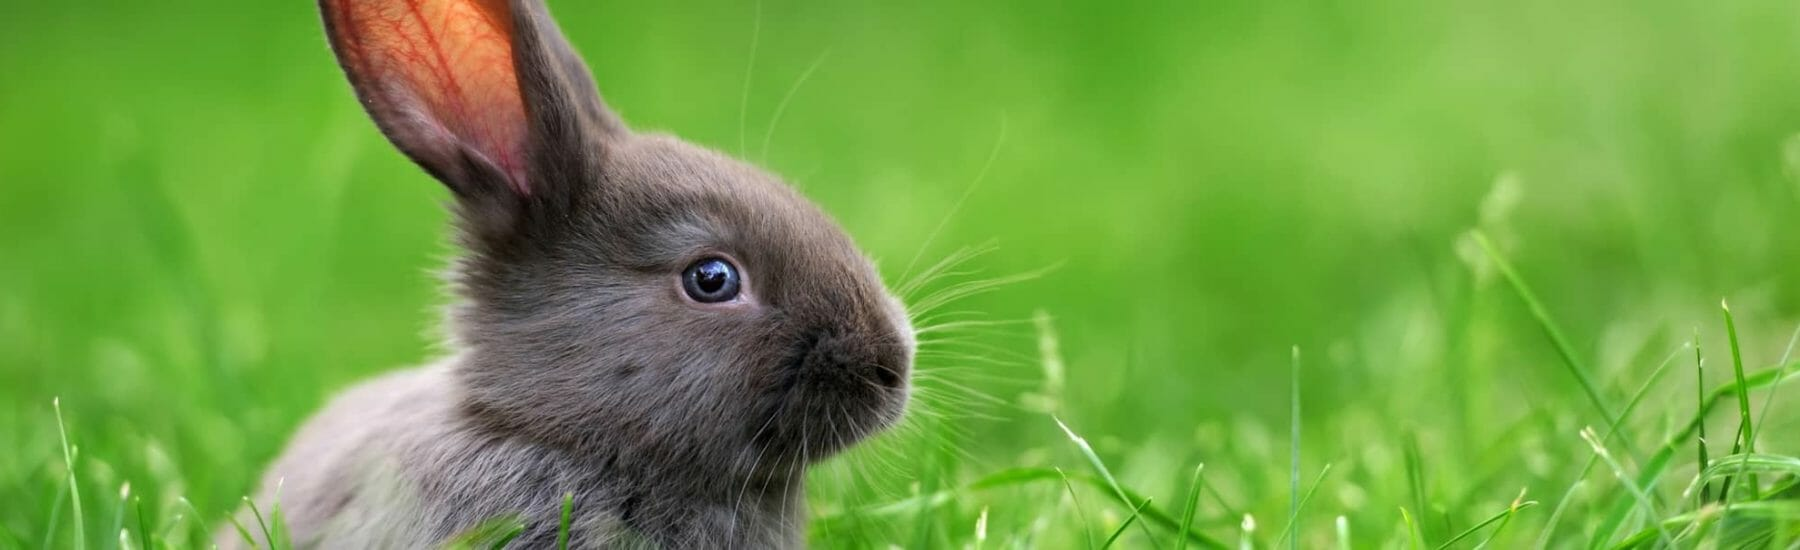 Small rabbit sitting in the grass